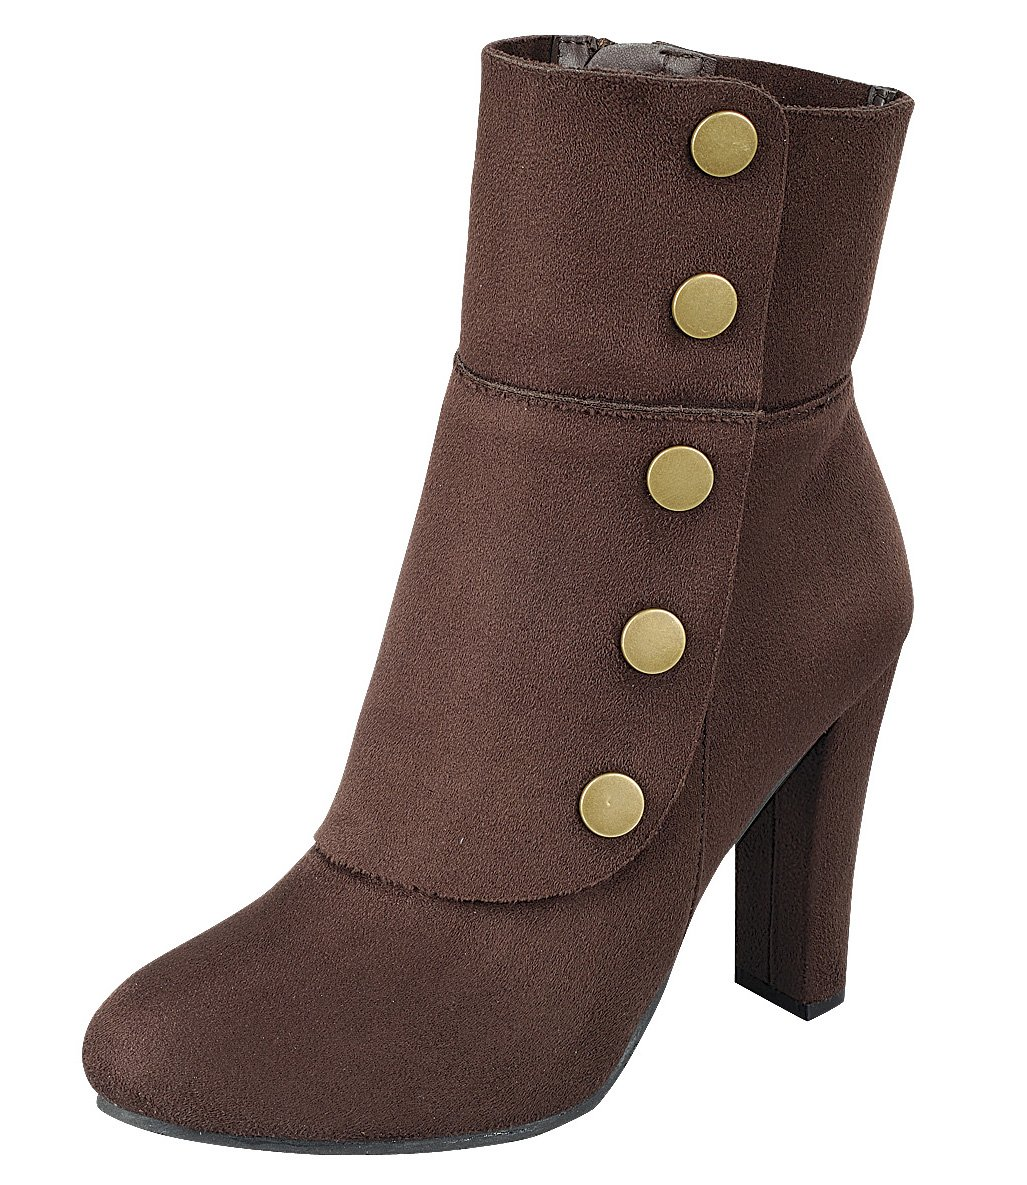 Cambridge Select Women's Victorian Steampunk Side Button Chunky Heel Ankle Boot (7.5 B(M) US, Brown)